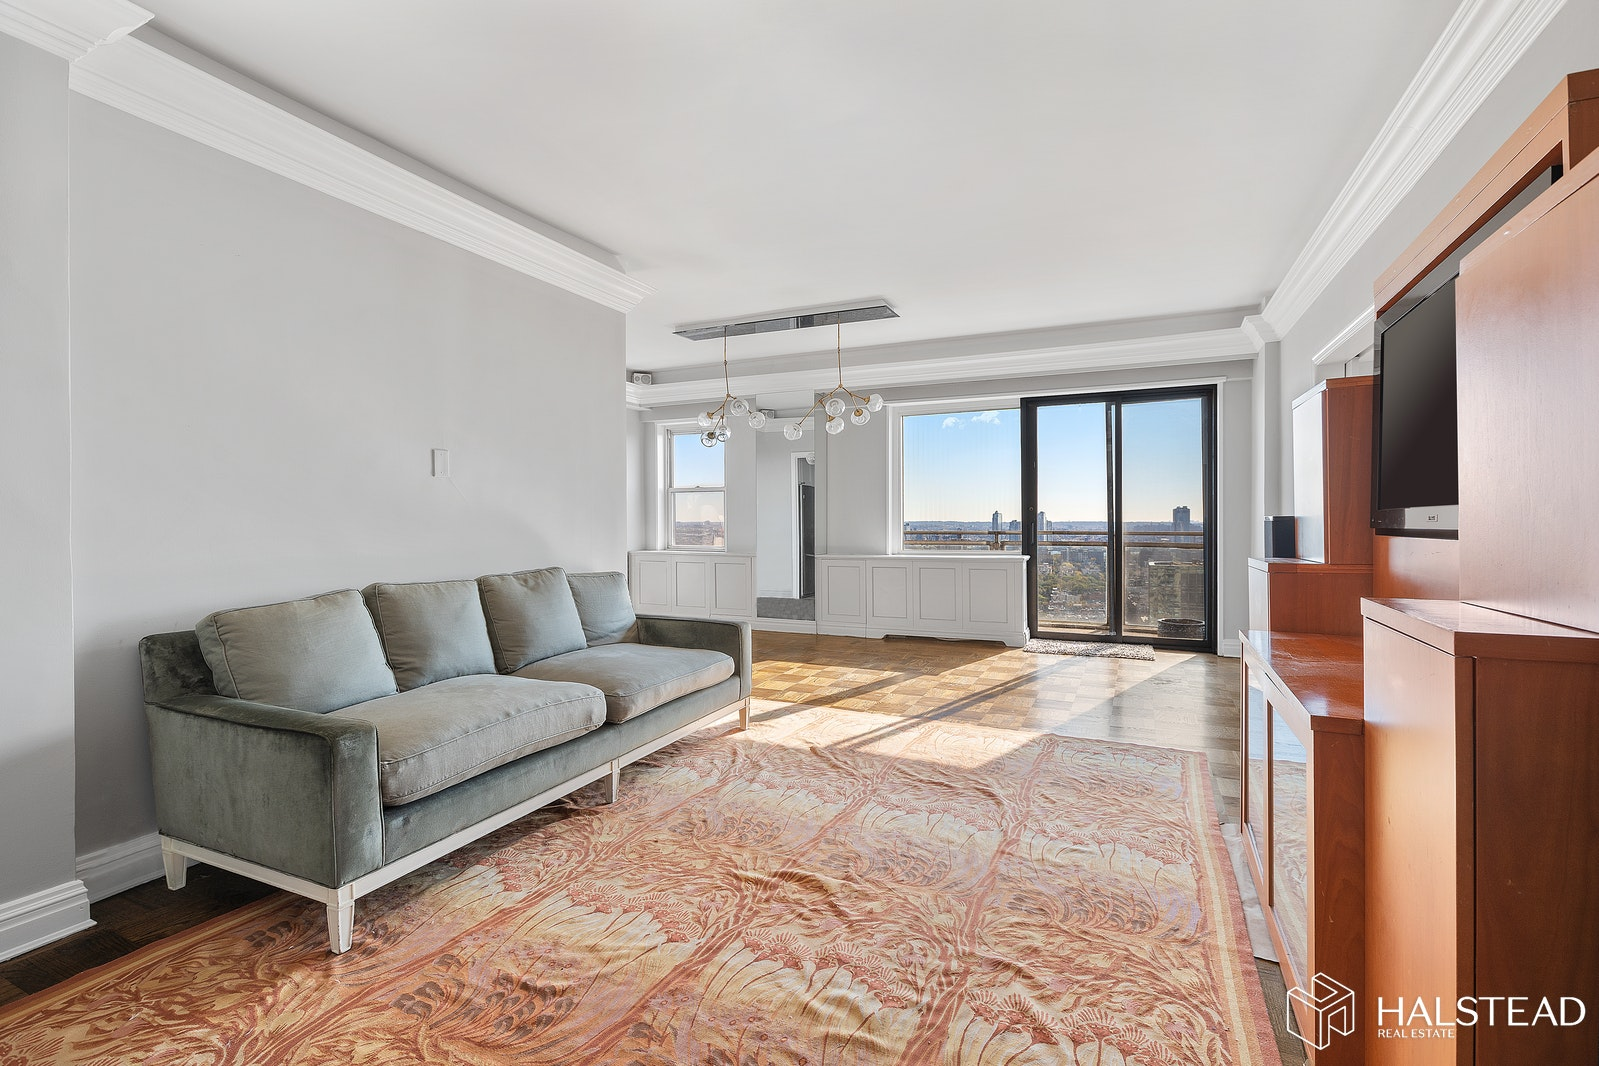 60 East 8th Street 34kl, Central Village, NYC, 10003, $5,000,000, Property For Sale, Halstead Real Estate, Photo 2